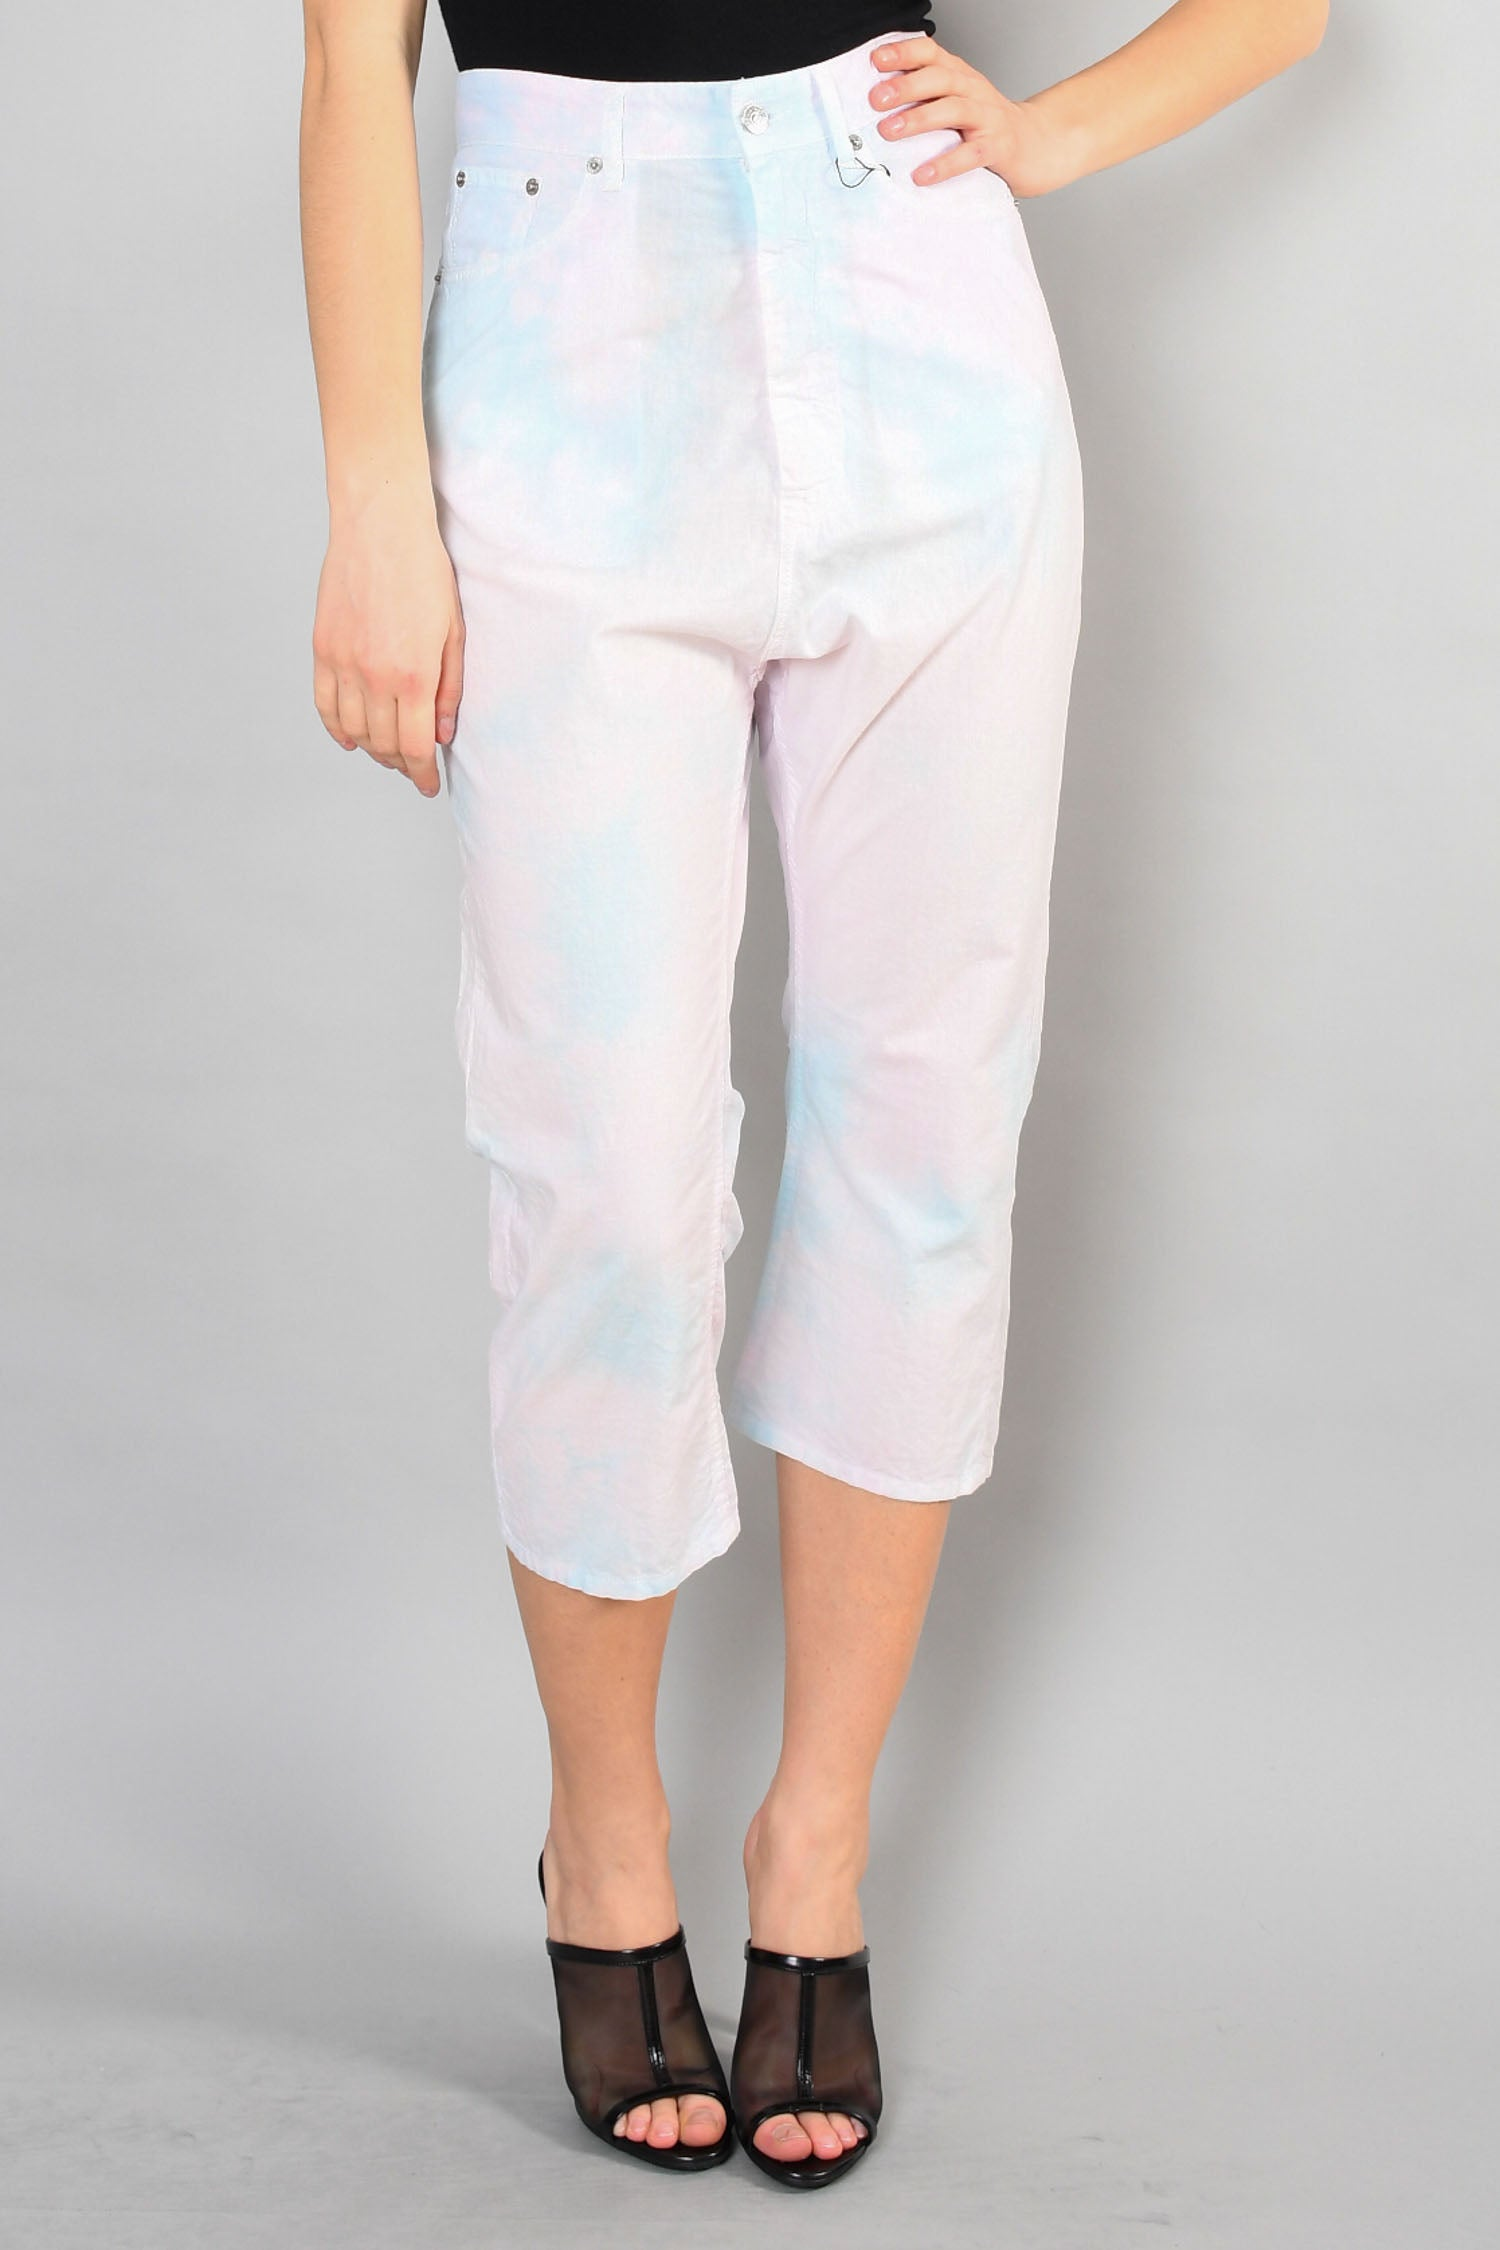 Maison Martin Margiela Blue and Pink Tie Dye Oversized Pants Size 38